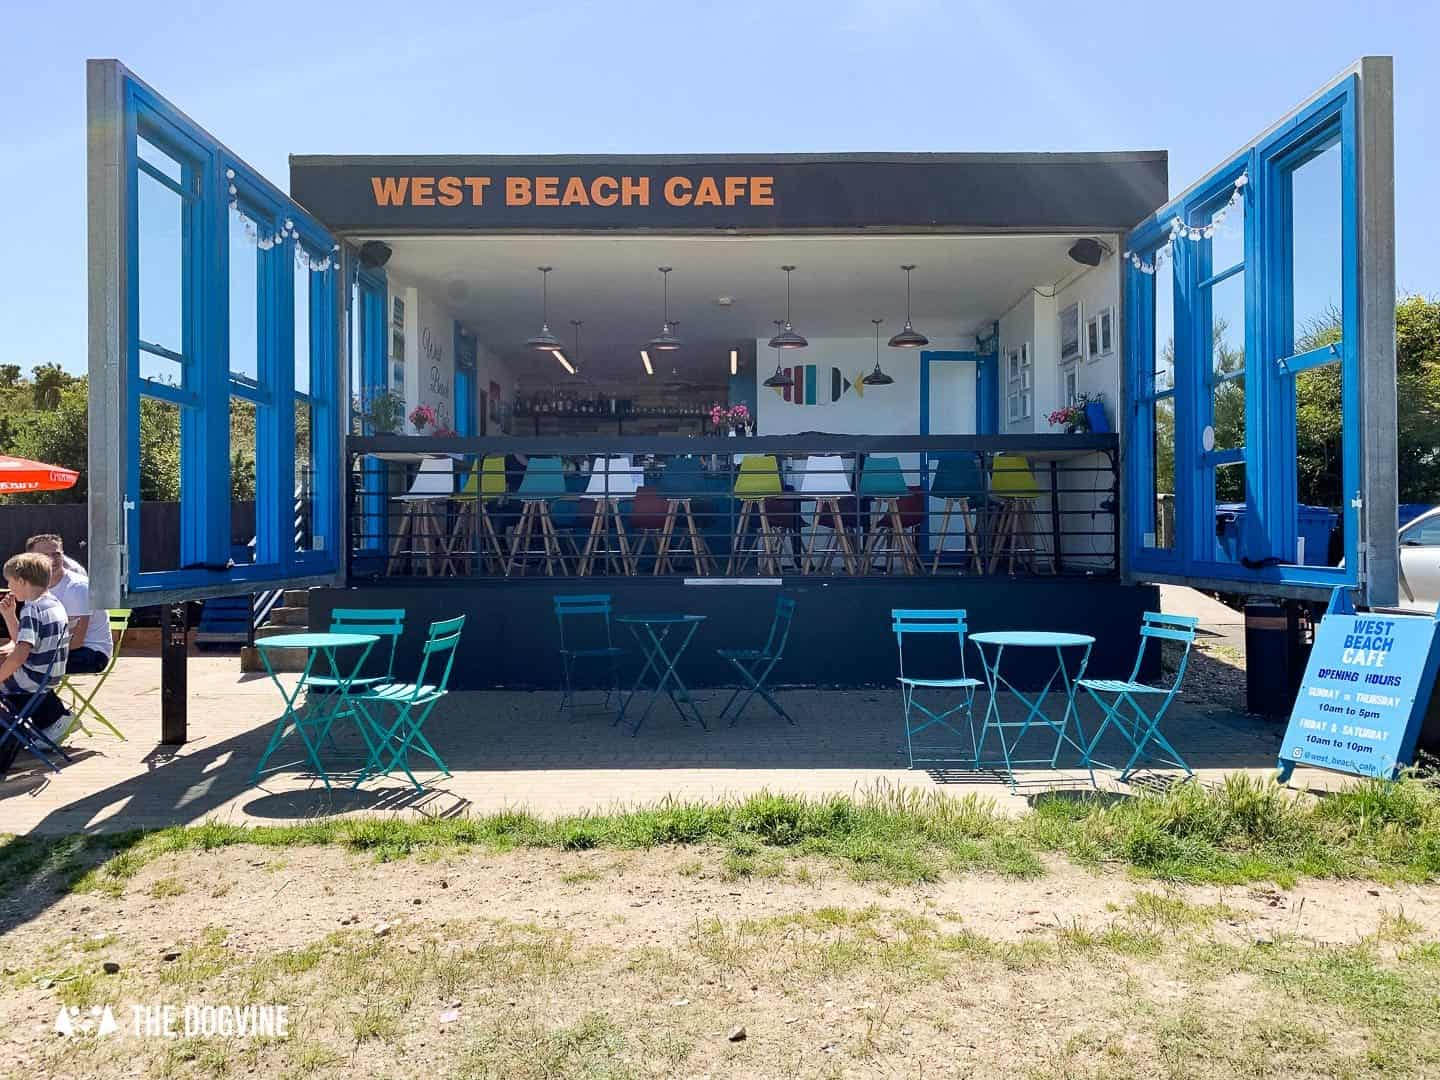 The Best Dog-Friendly Beaches in West Sussex - Littlehampton West Beach Cafe